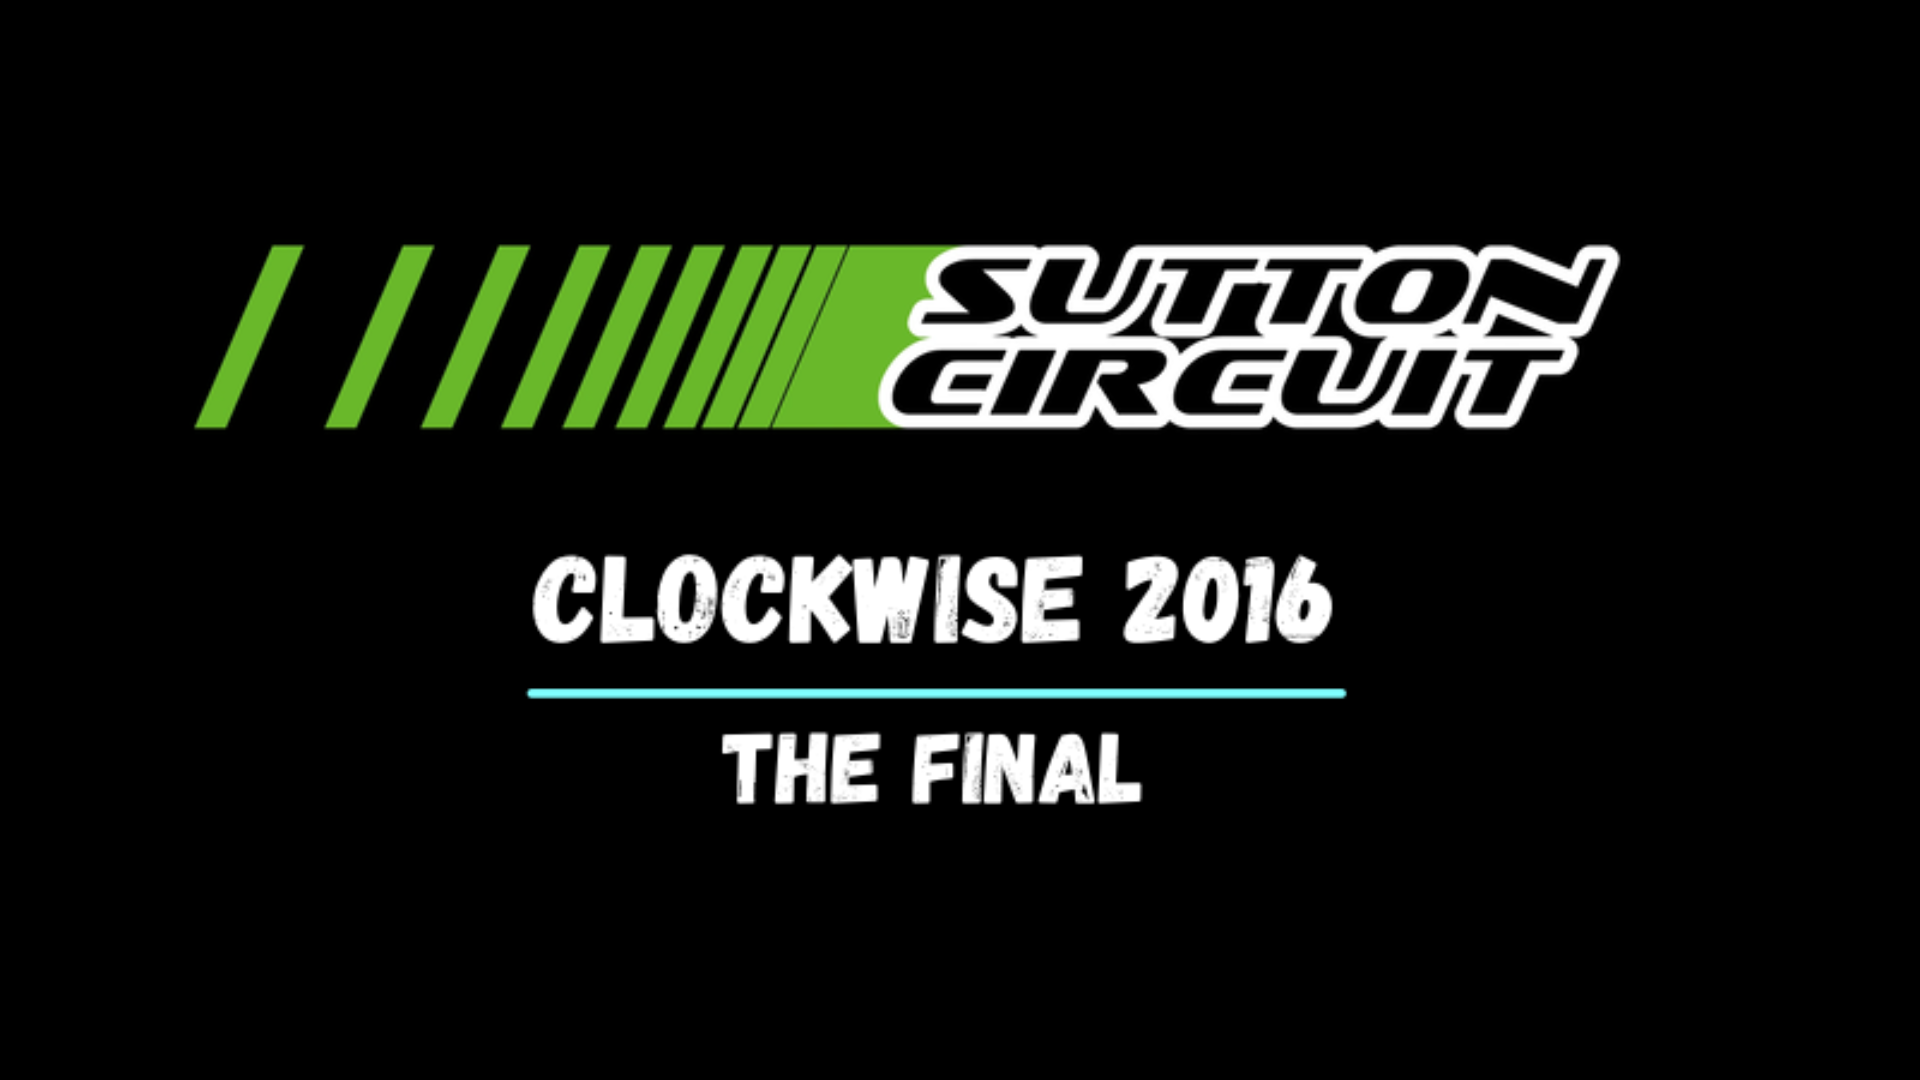 2016 Clockwise Final